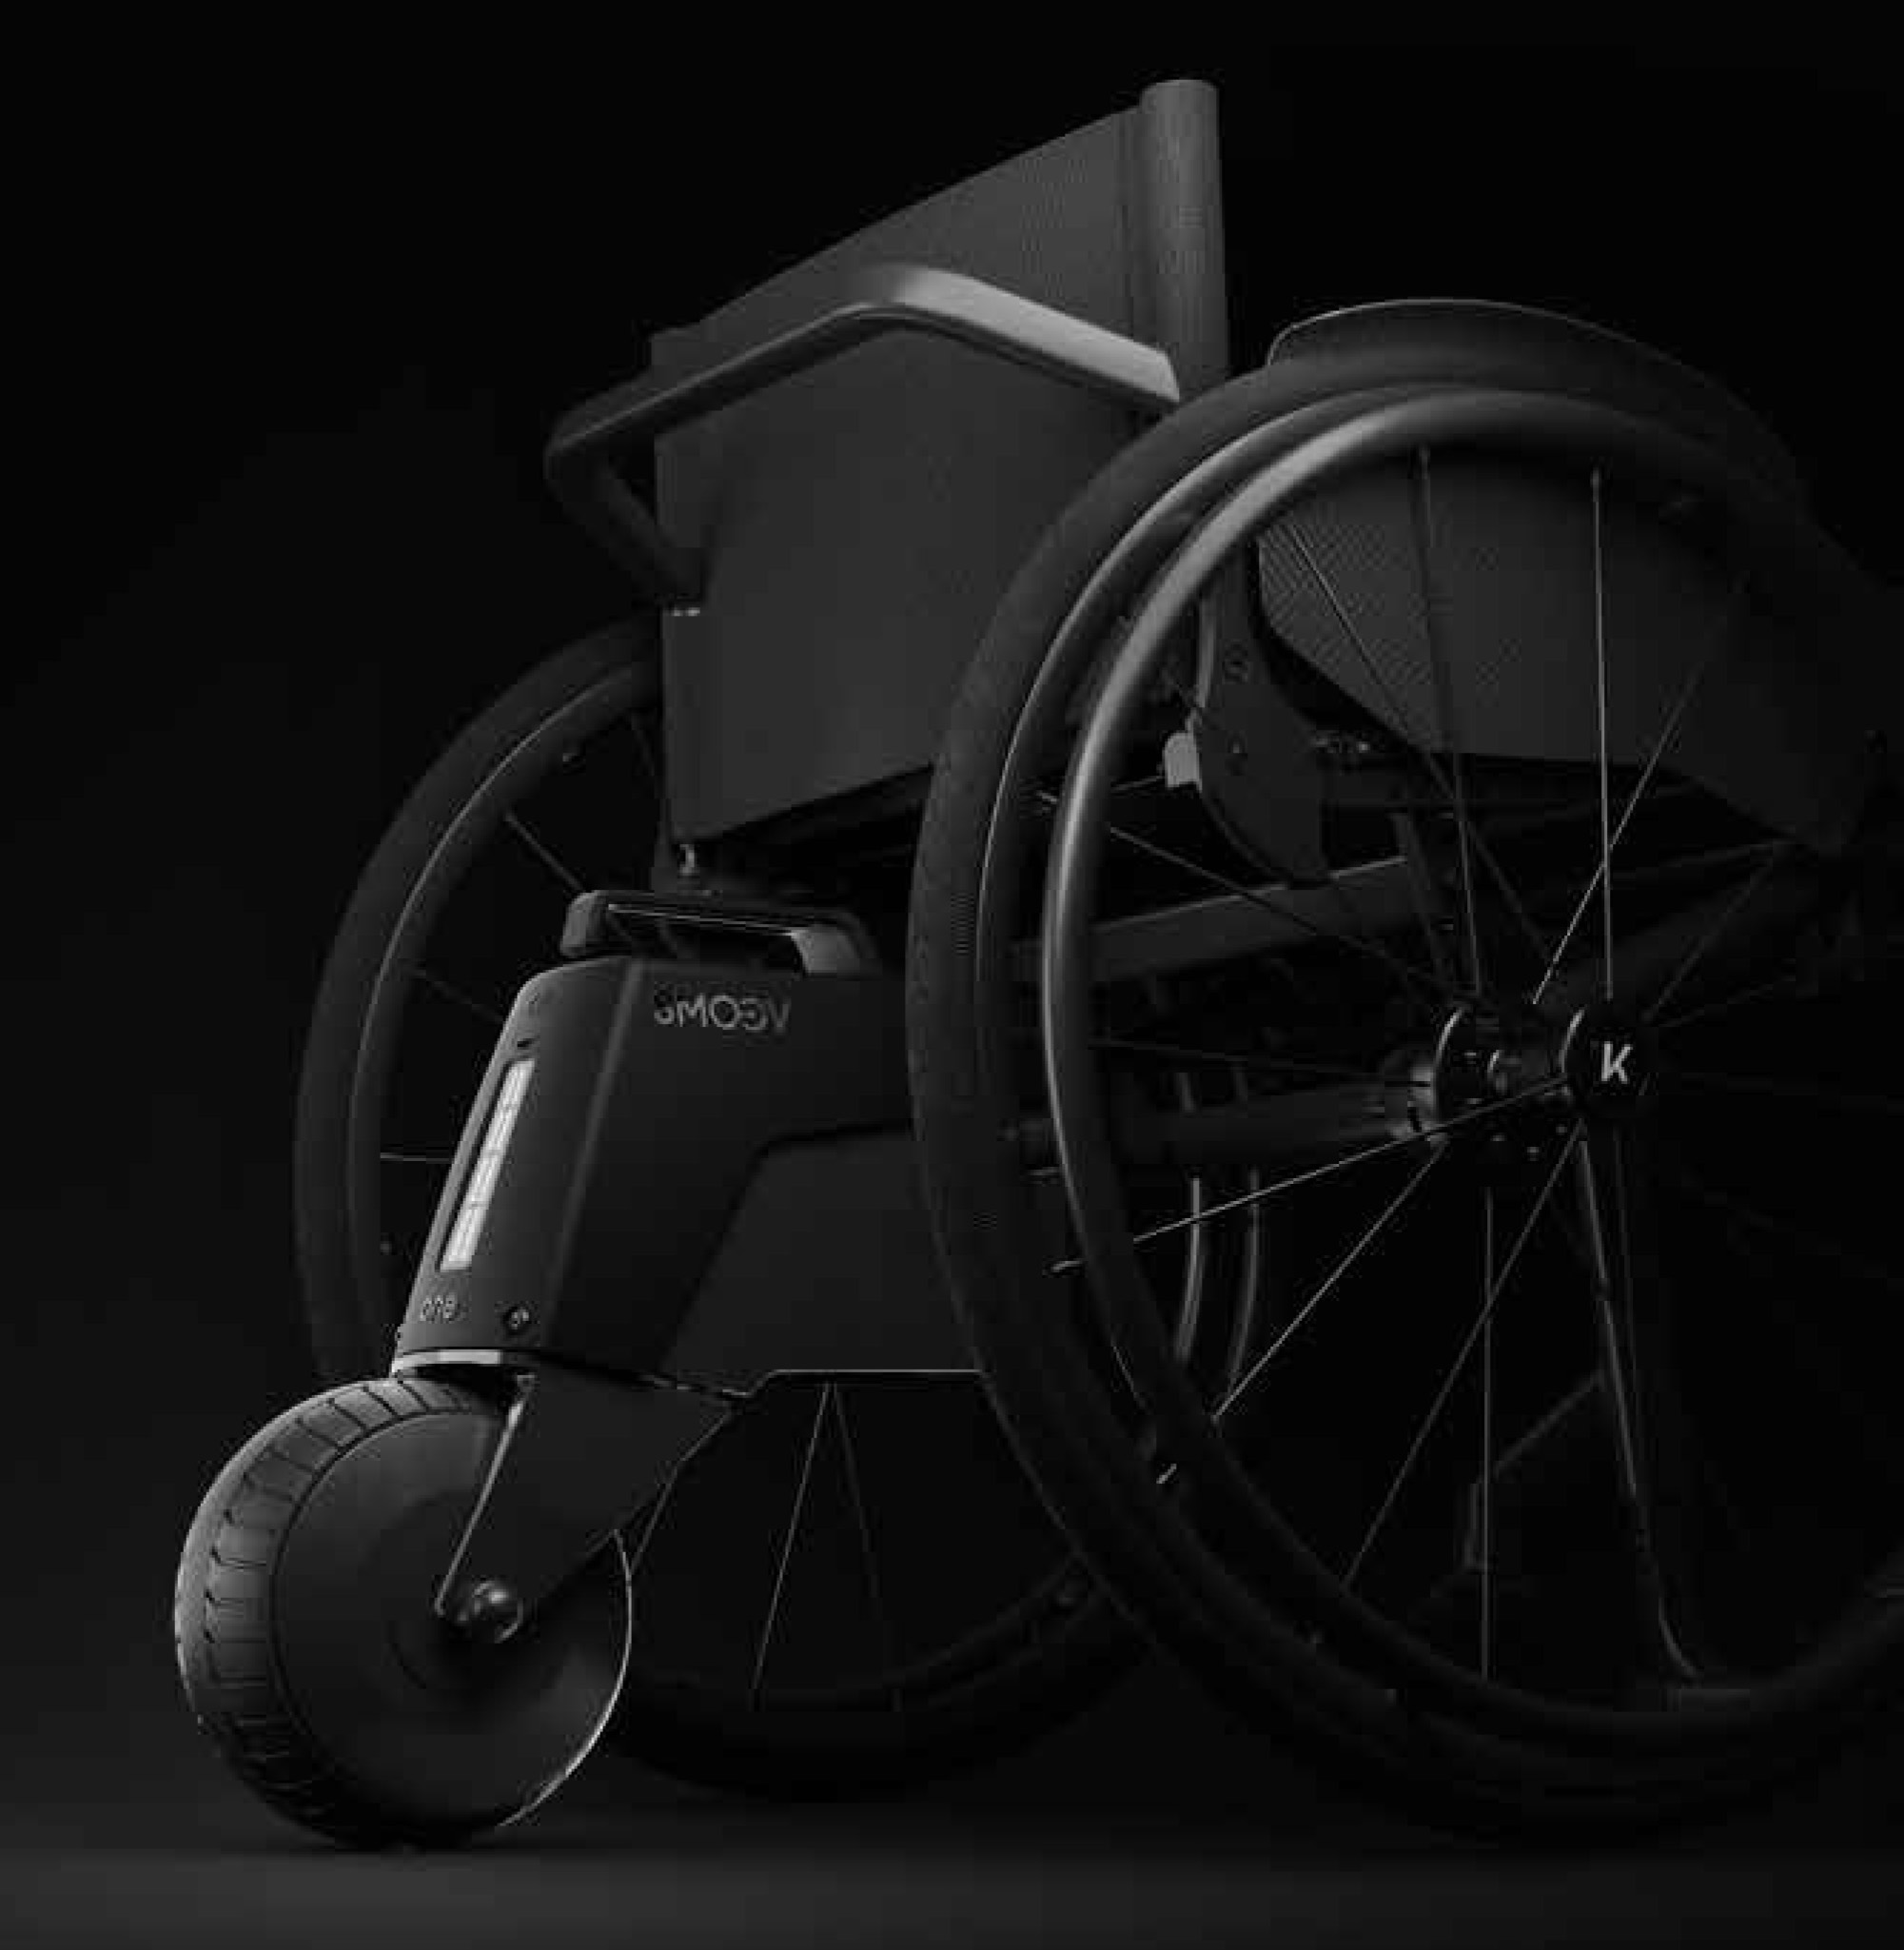 Smoov Electric Drive for Active Wheelchairs